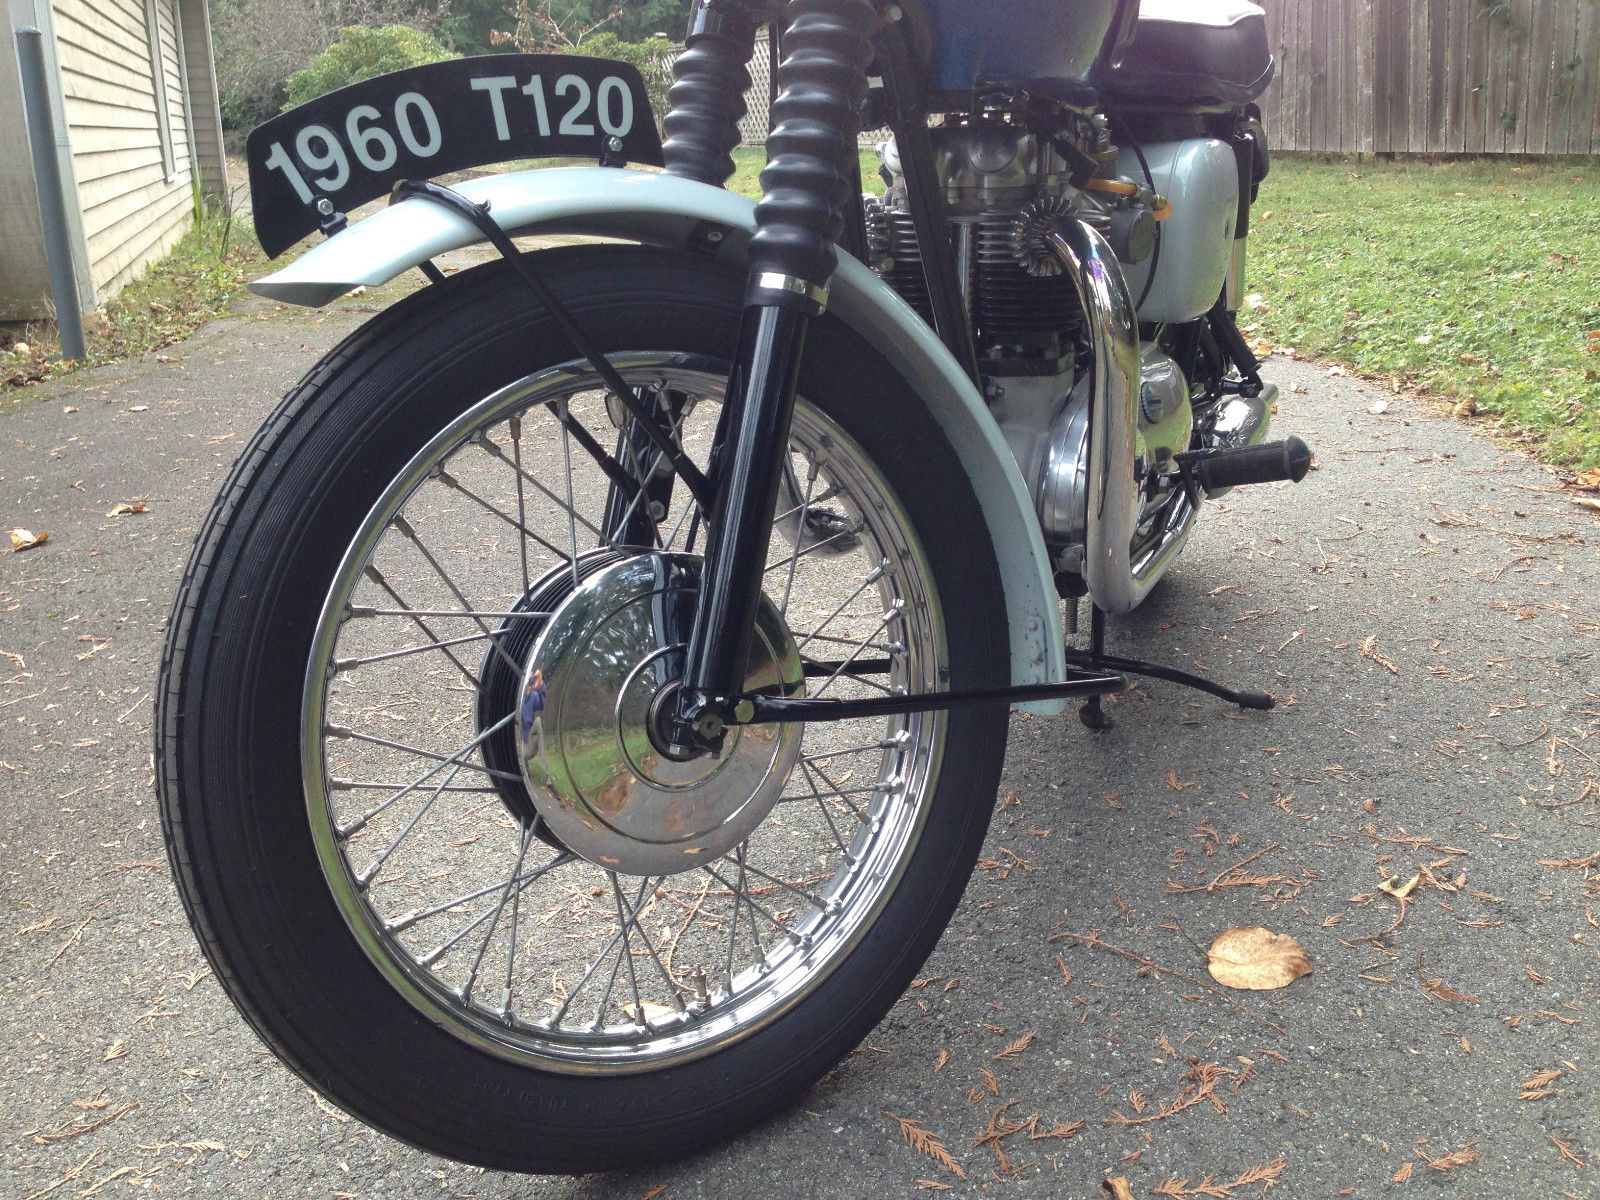 Triumph Bonneville T120 - 1960 - Front Wheel Hub, Number Plate and Forks.